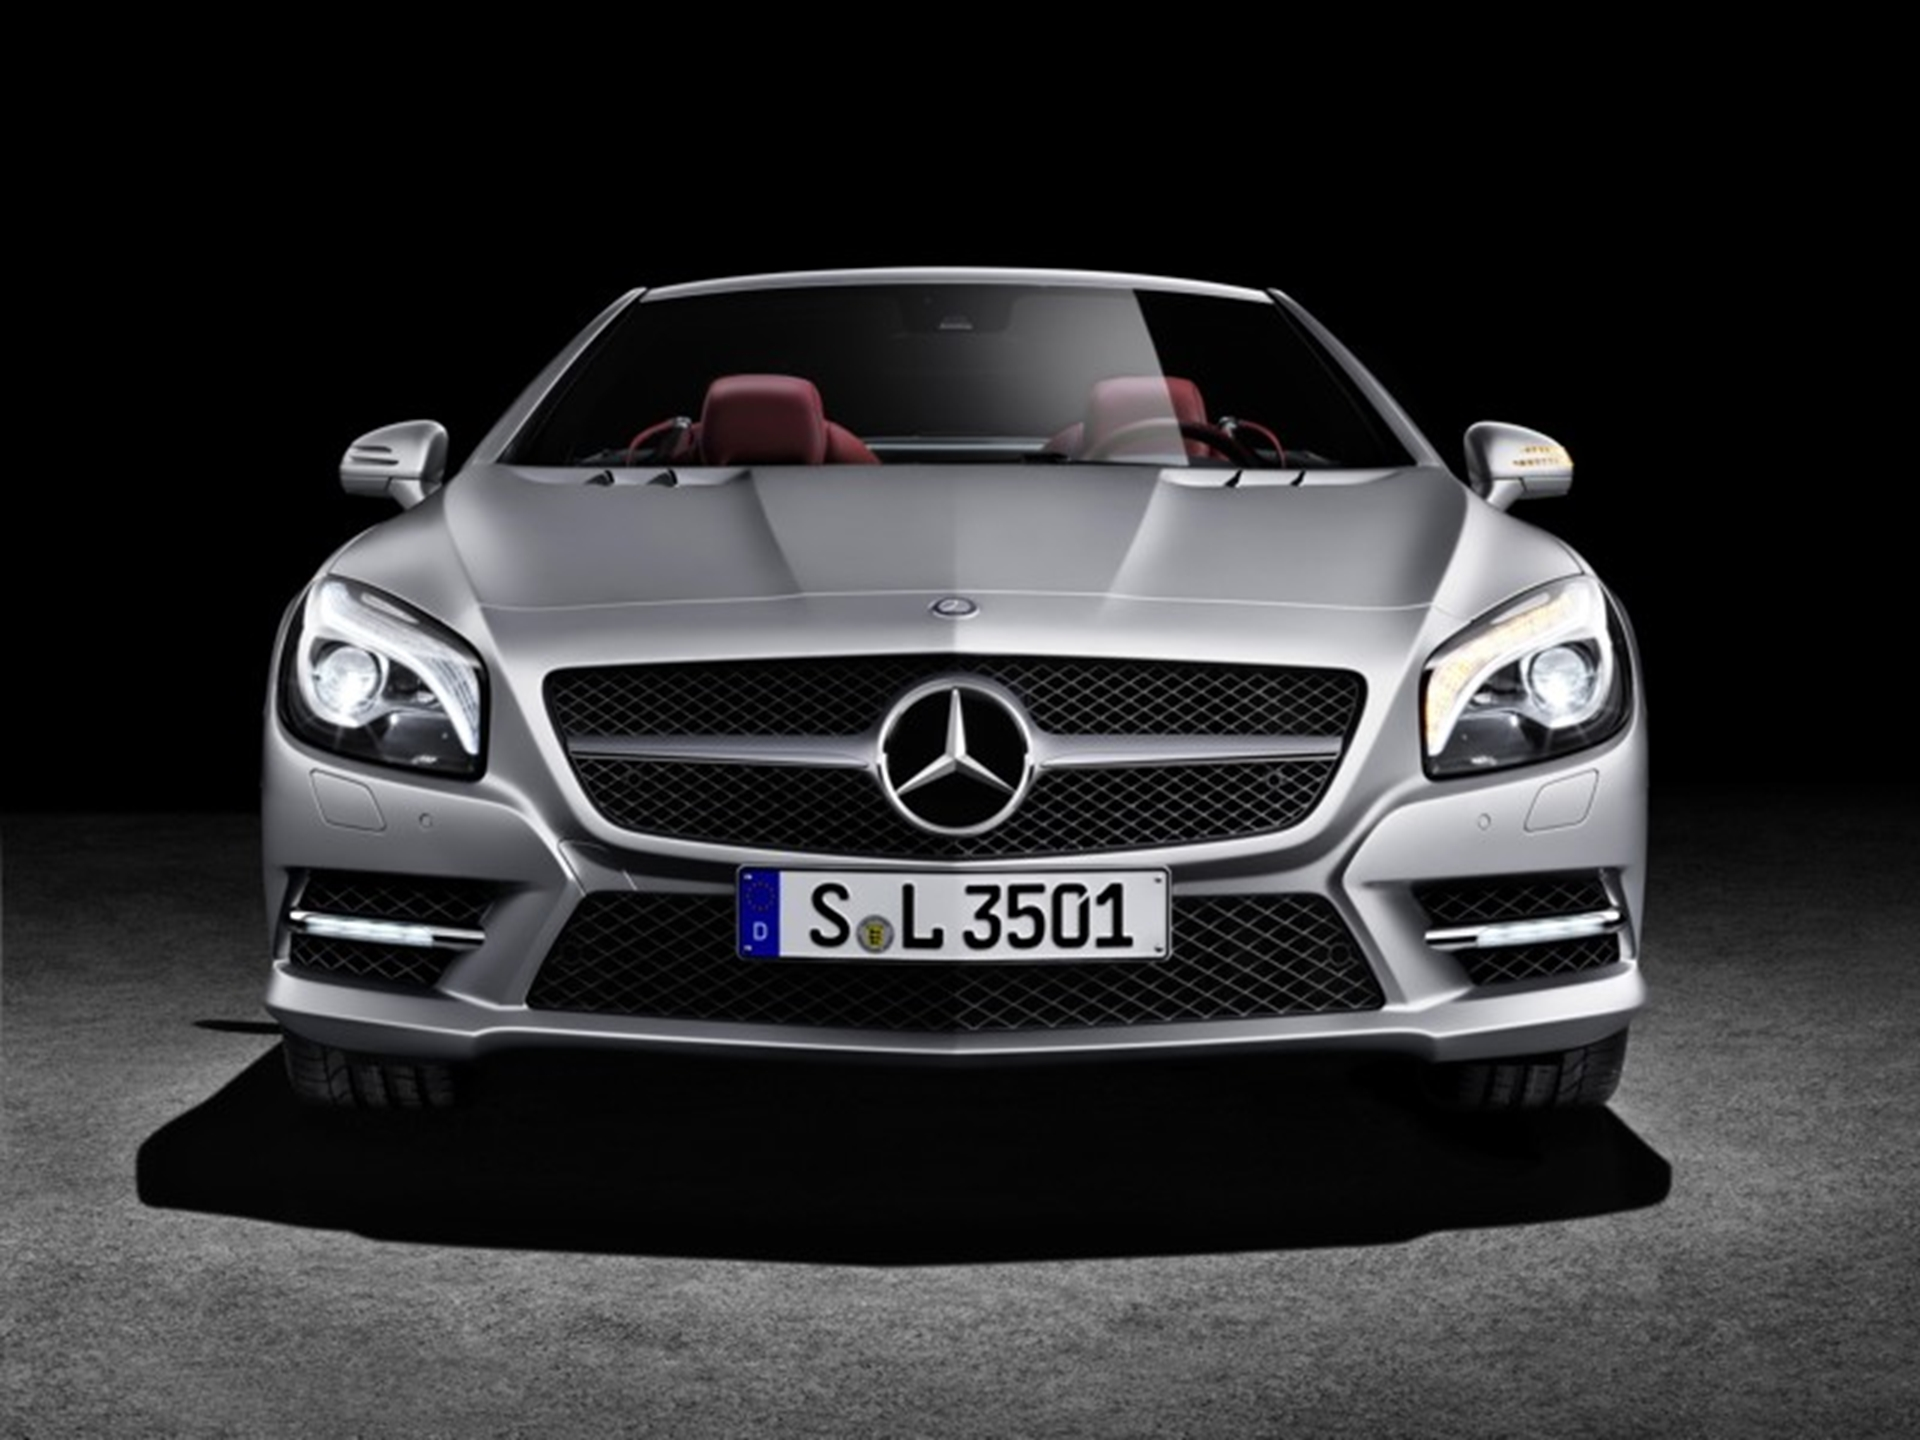 The 2012 Mercedes-Benz SL